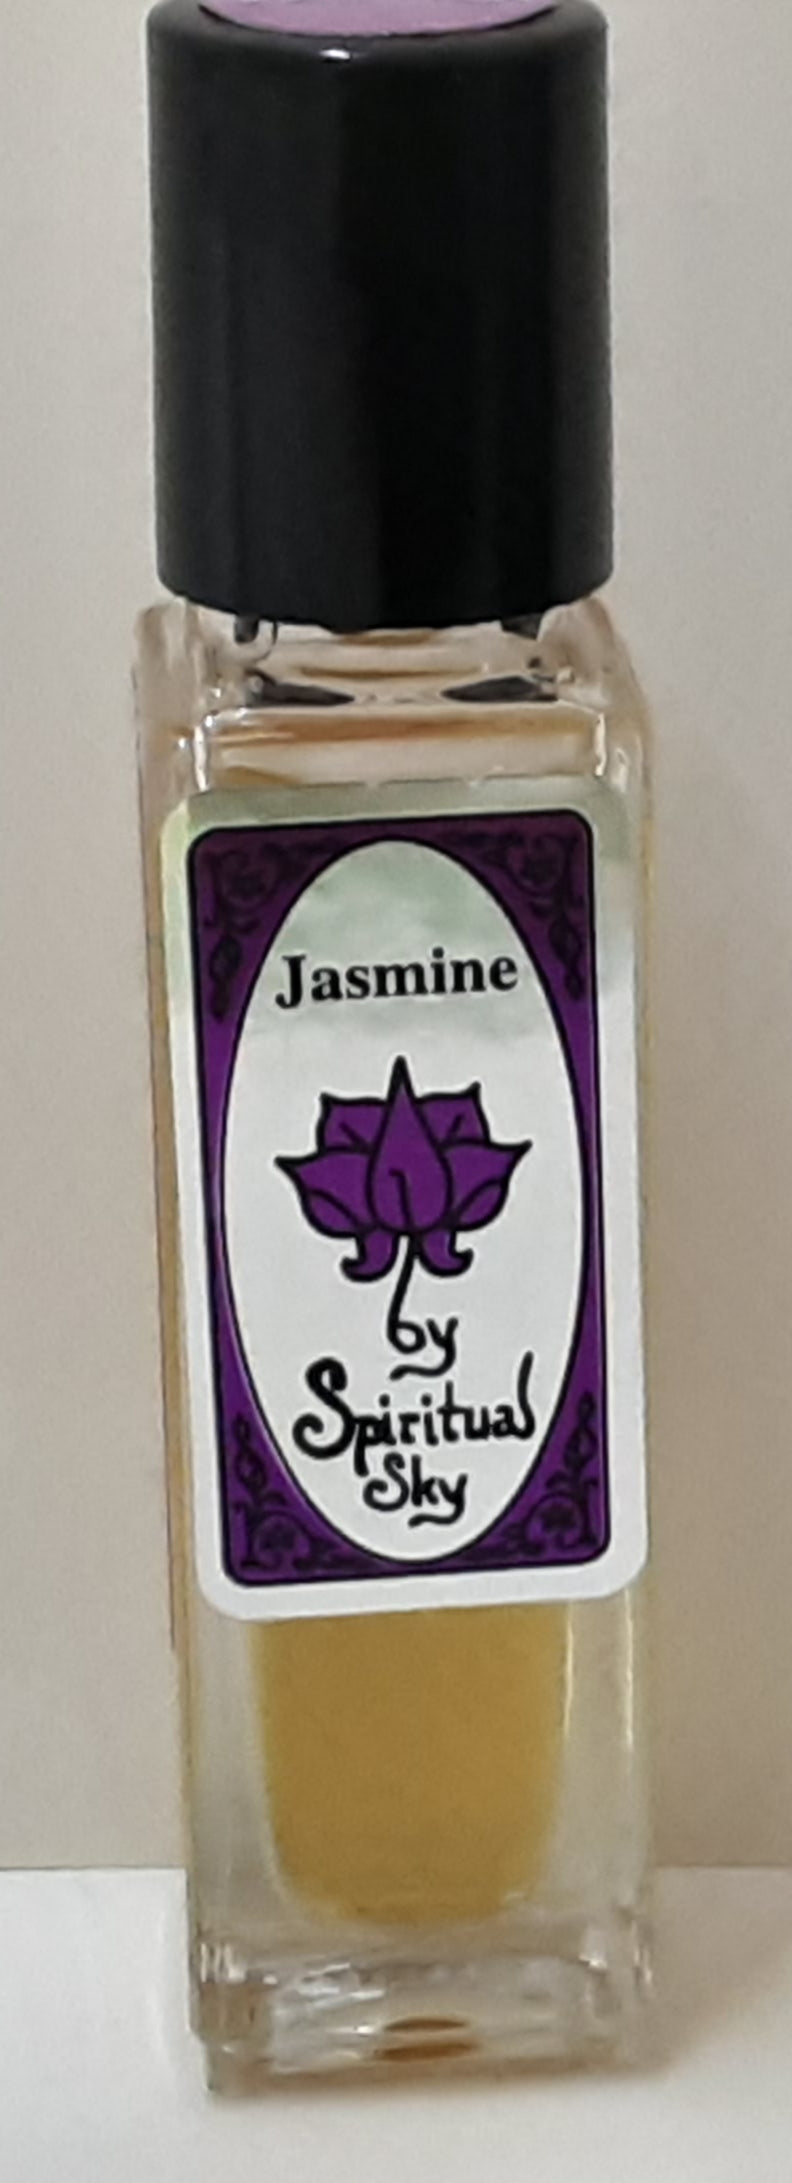 Jasmine Spiritual Sky  Perfumed Oil 8.5ml